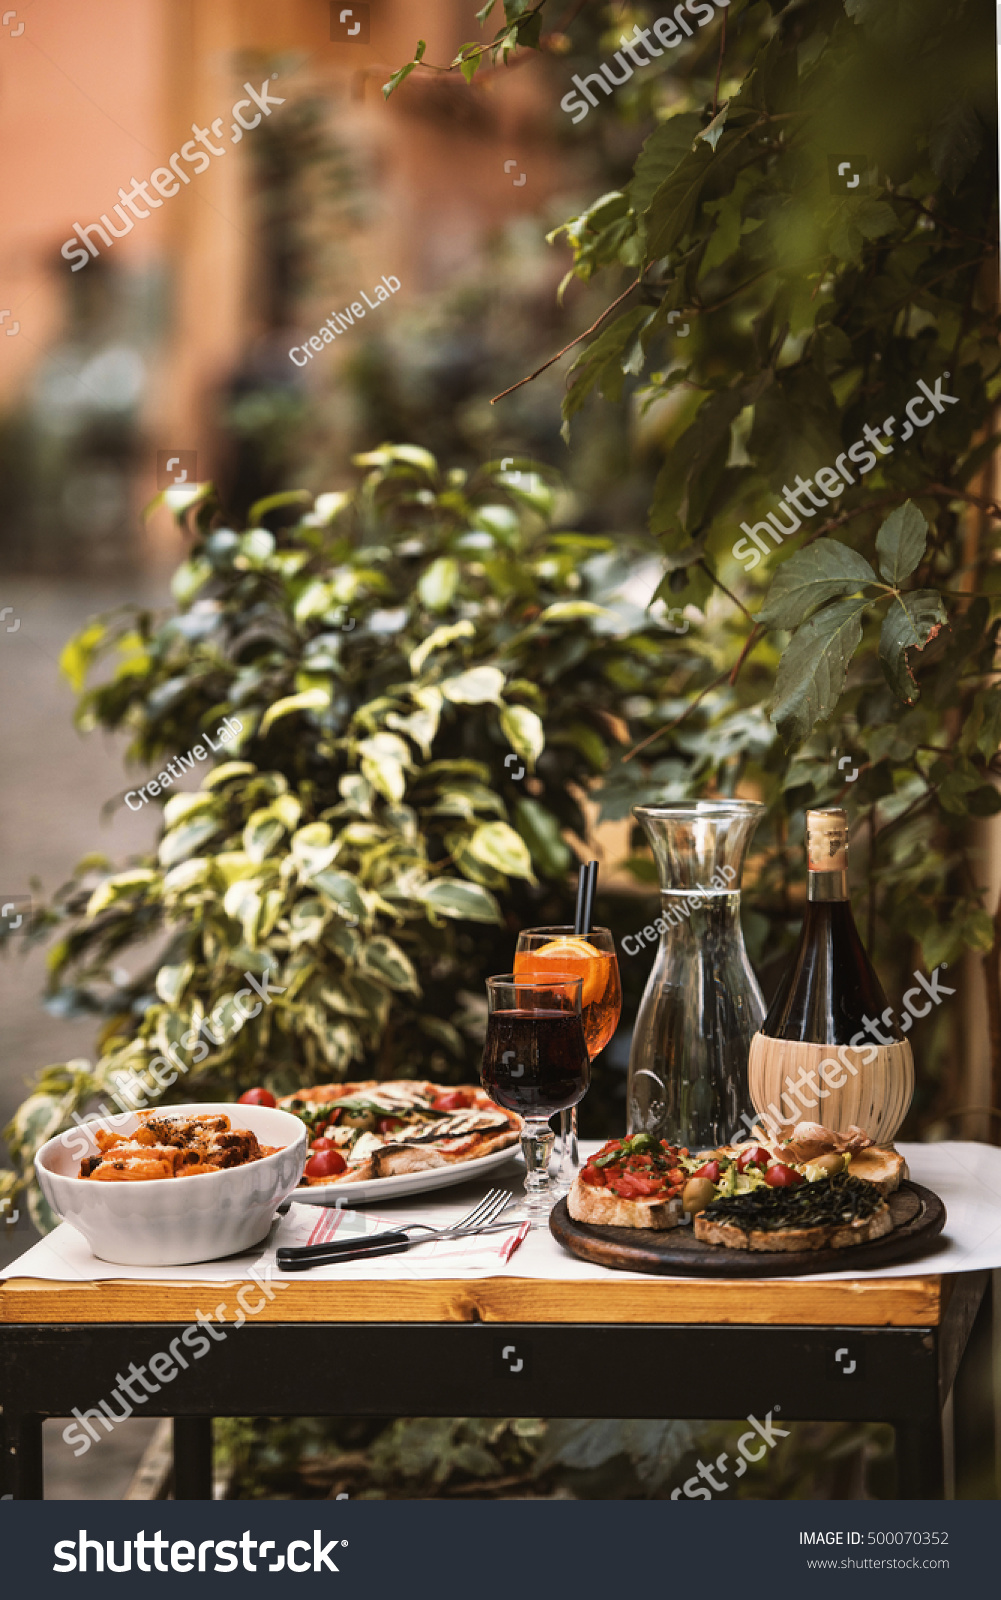 Italian Food Stock Photo 500070352